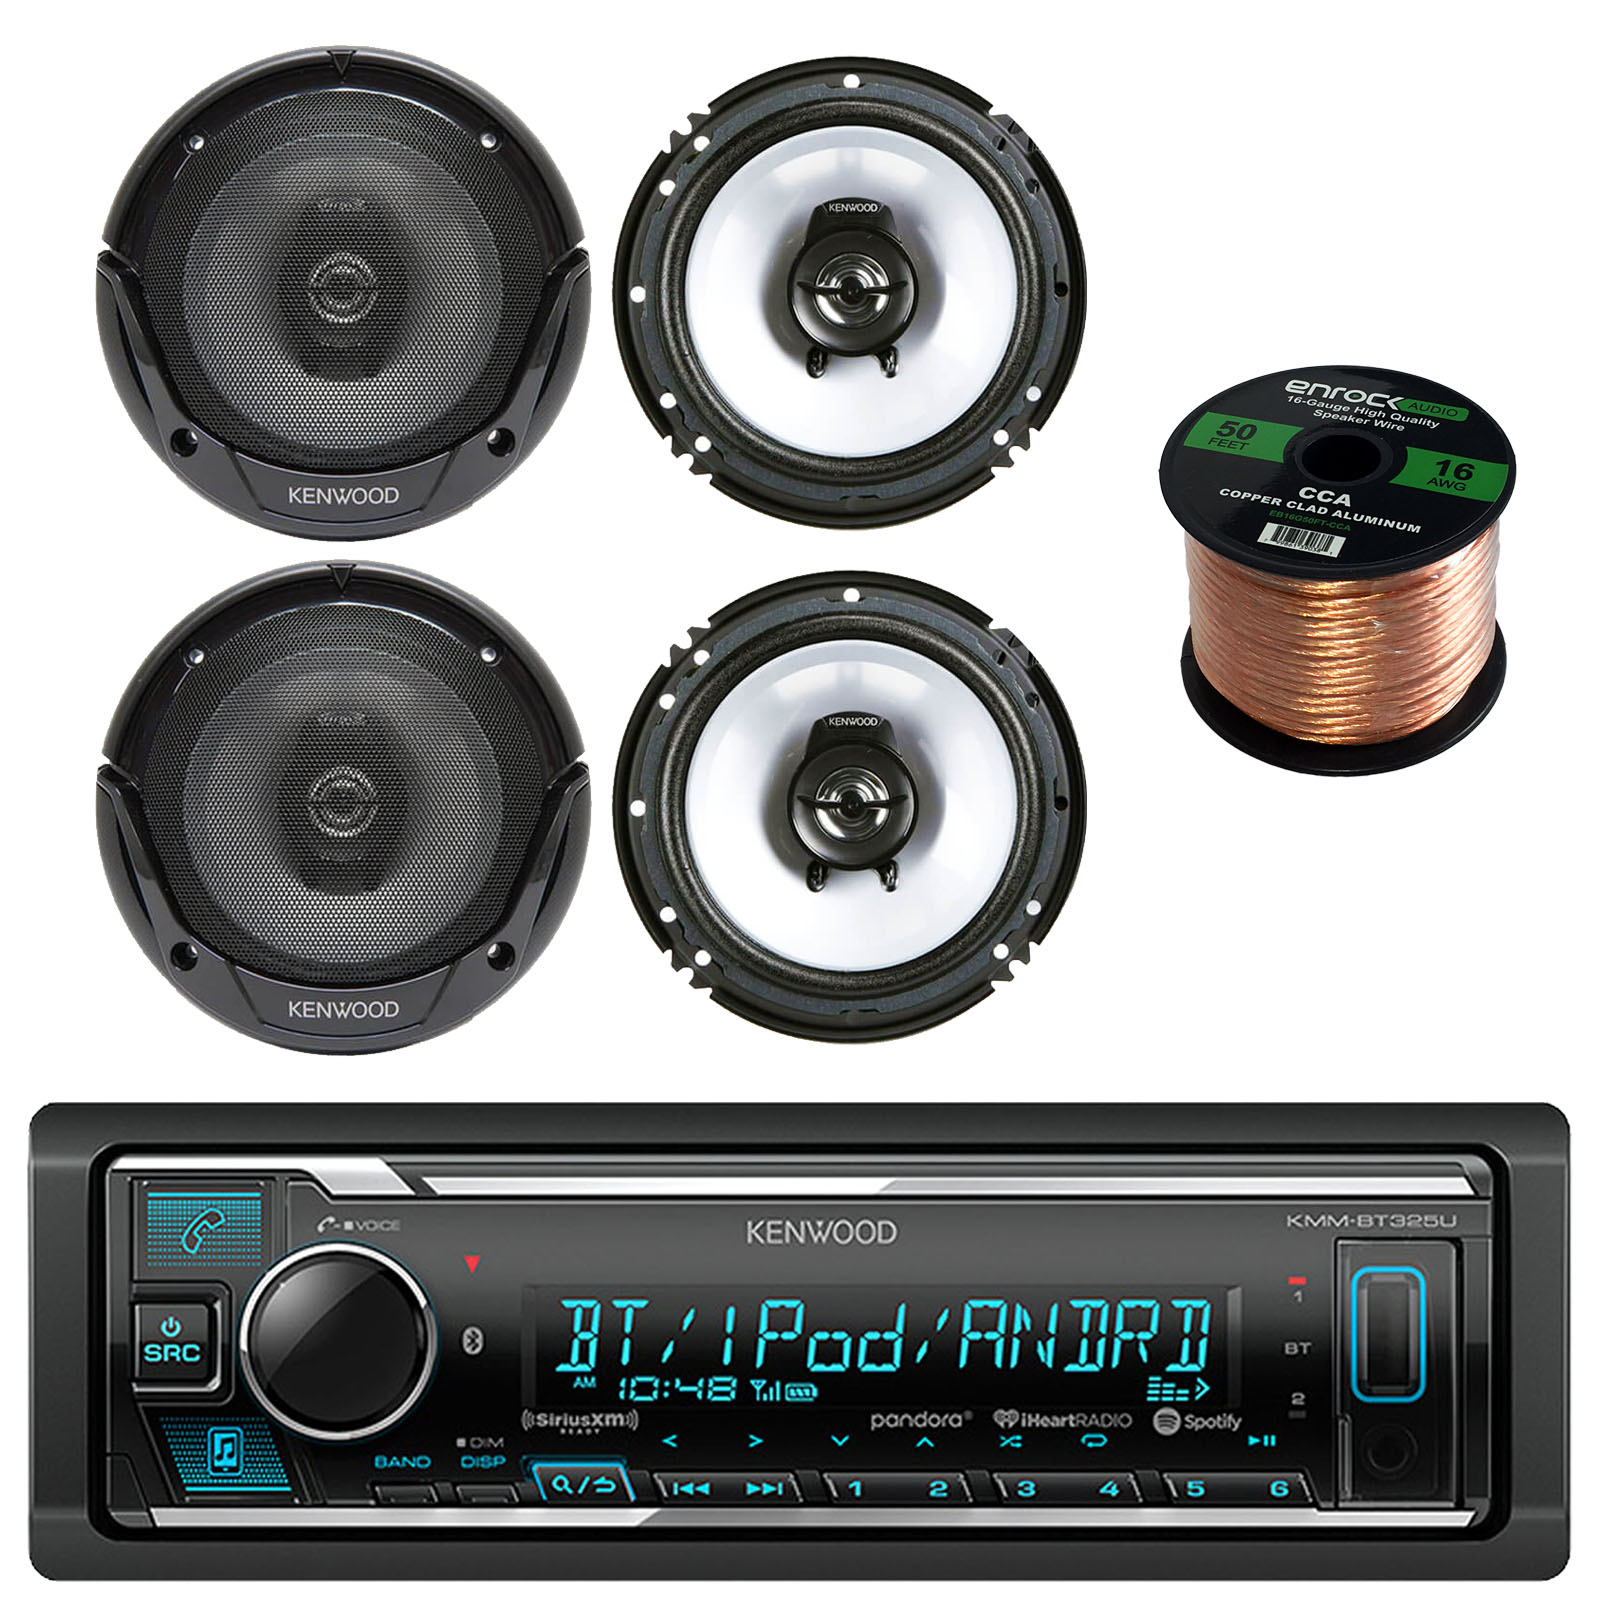 "Kenwood KMM-BT325U Single DIN Bluetooth Stereo, Cd Receiver, Am/fm Tuner with 4 x Kenwood KFC-1665S 6.5"" 2-Way Black Car Speakers and 50' 16 Gauge Wire"